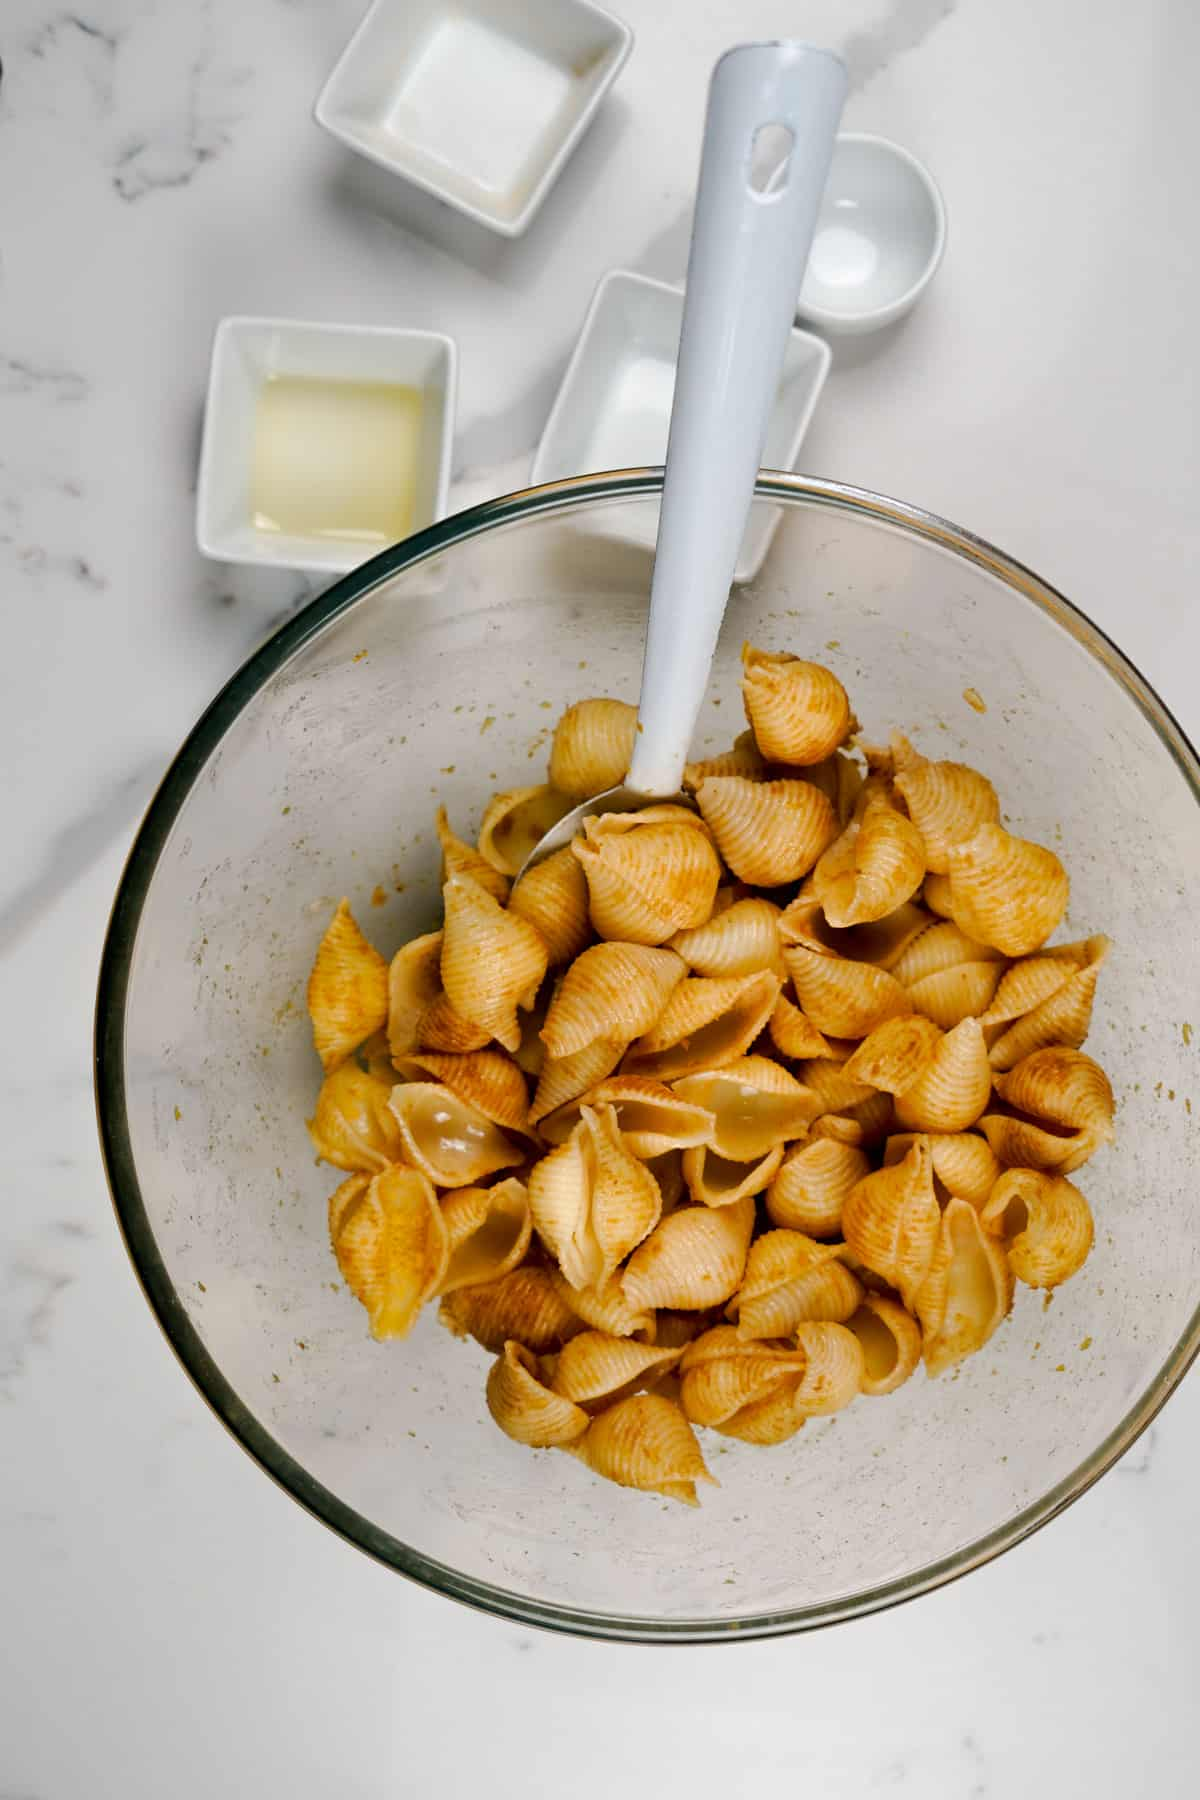 pasta chips in a bowl mix with oil and seasoning